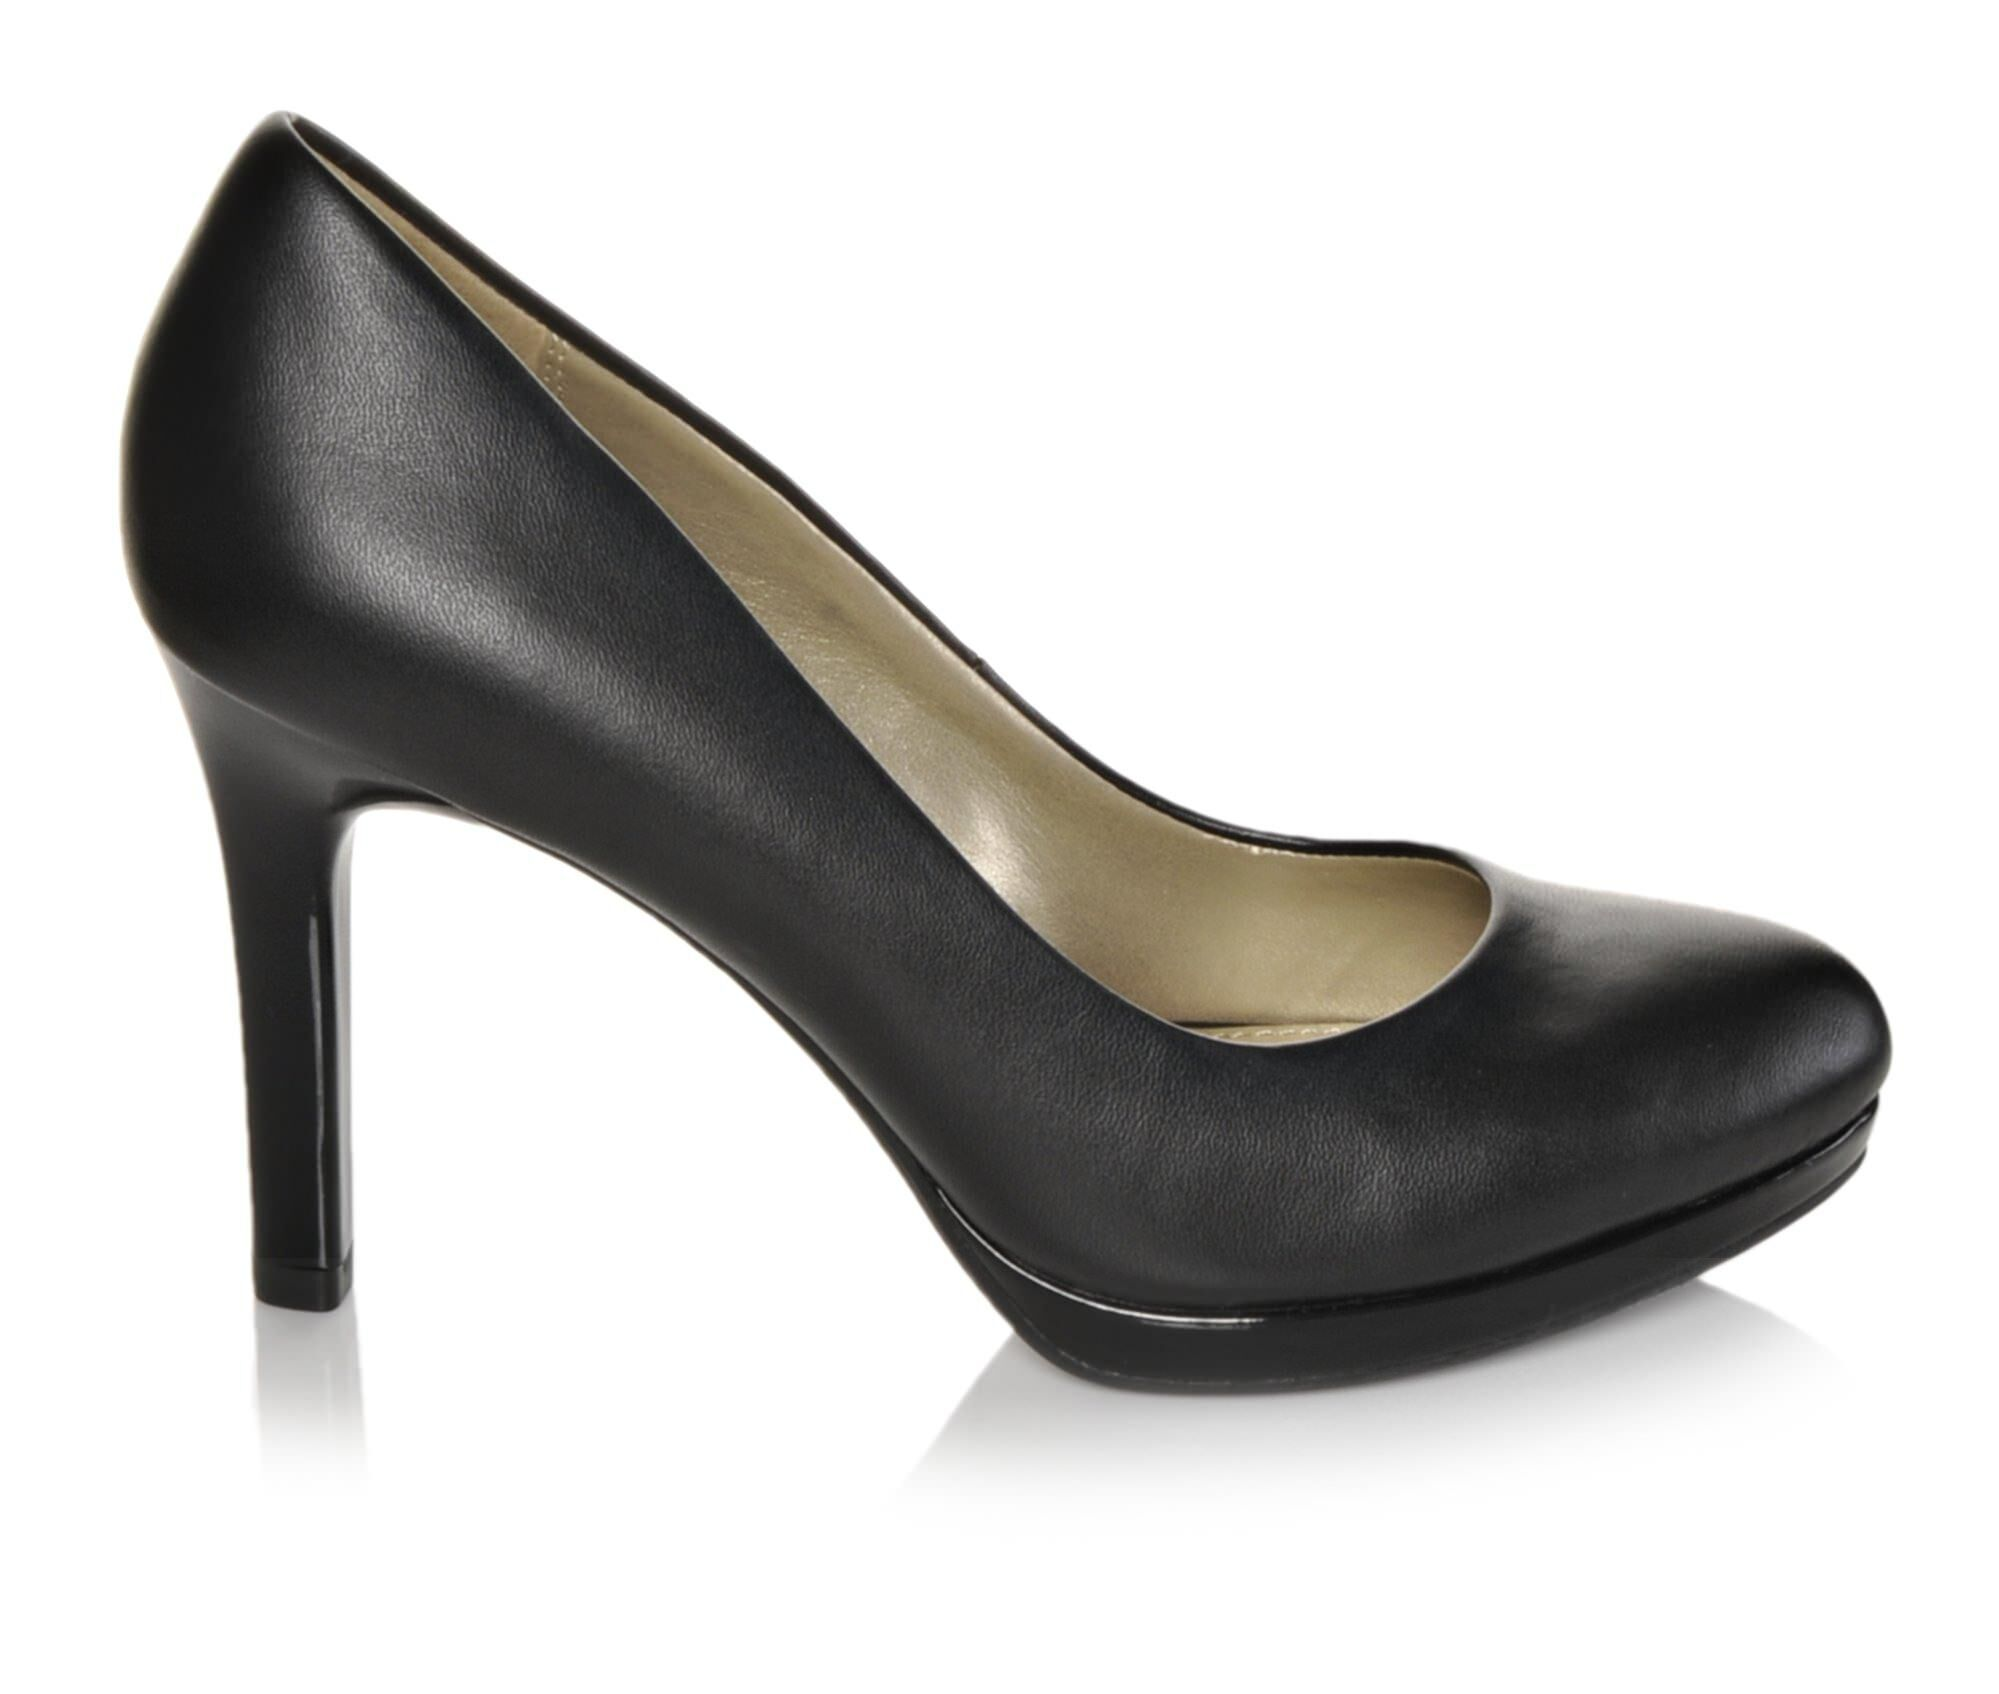 new arrival cheap price 2014 unisex cheap price Women's Bandolino Dannie Pumps purchase sale online prices cheap online 82O078ps8j